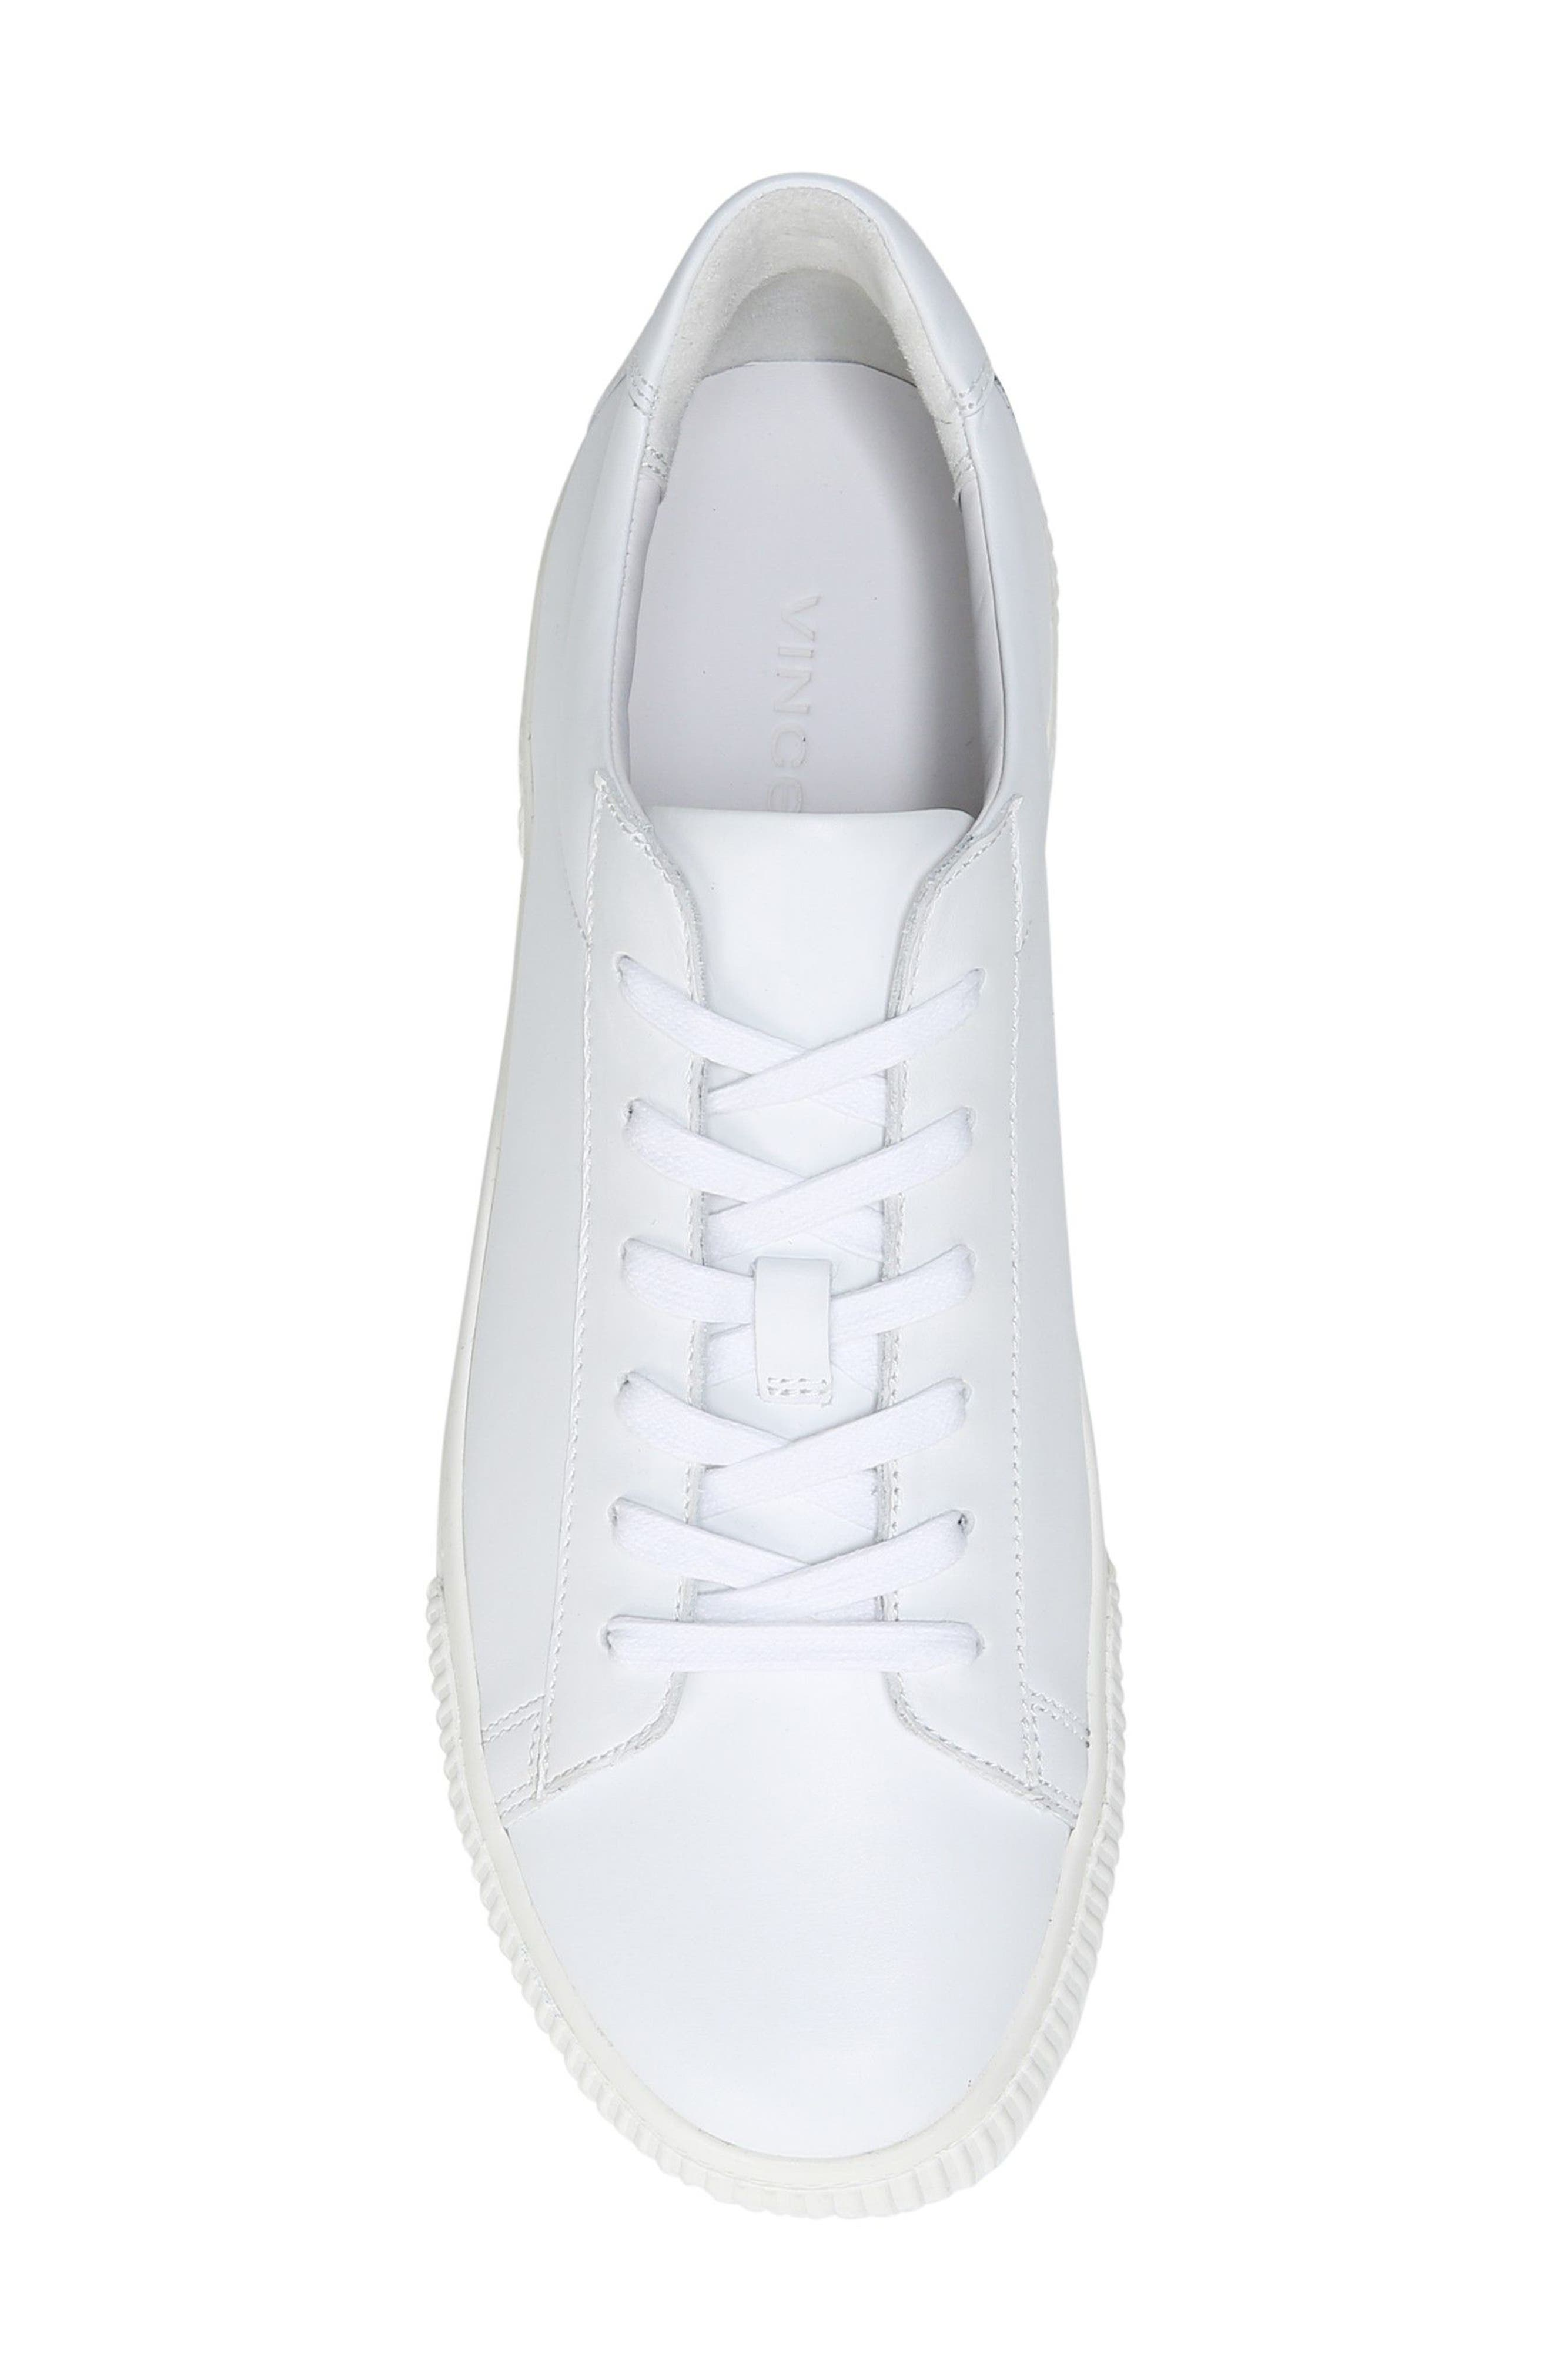 Kurtis Low Top Sneaker,                             Alternate thumbnail 5, color,                             WHITE